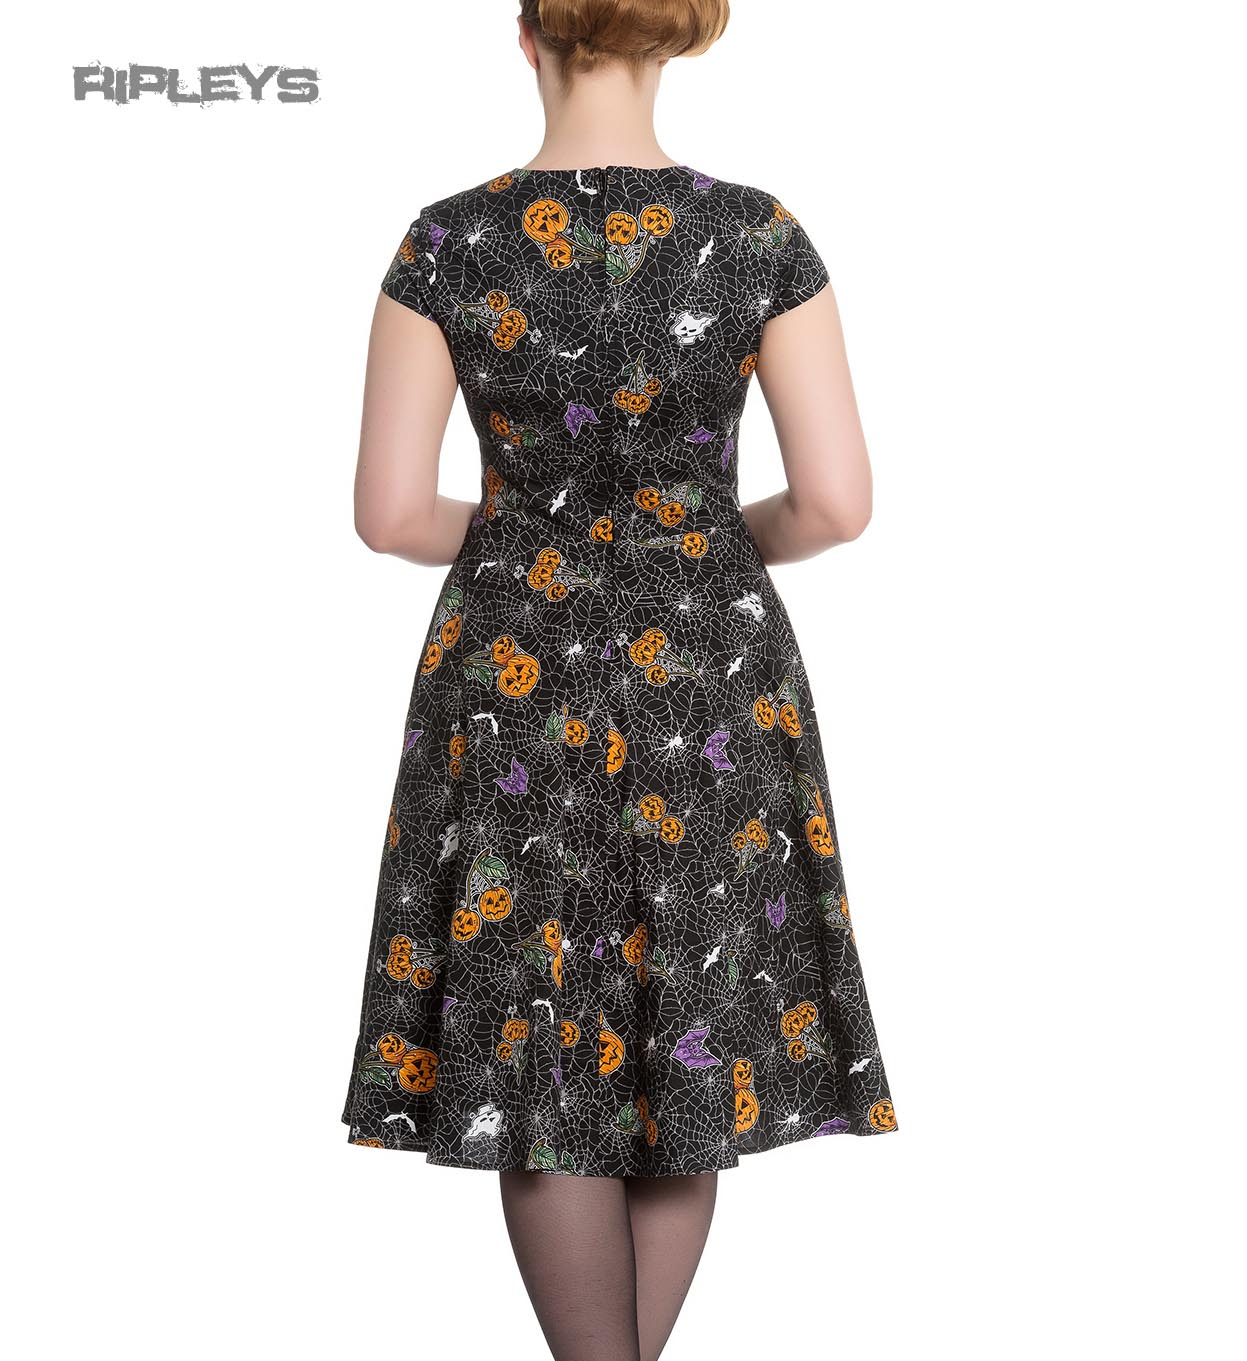 Hell-Bunny-Black-Pinup-50s-Goth-Webs-Dress-HARLOW-Halloween-All-Sizes thumbnail 32